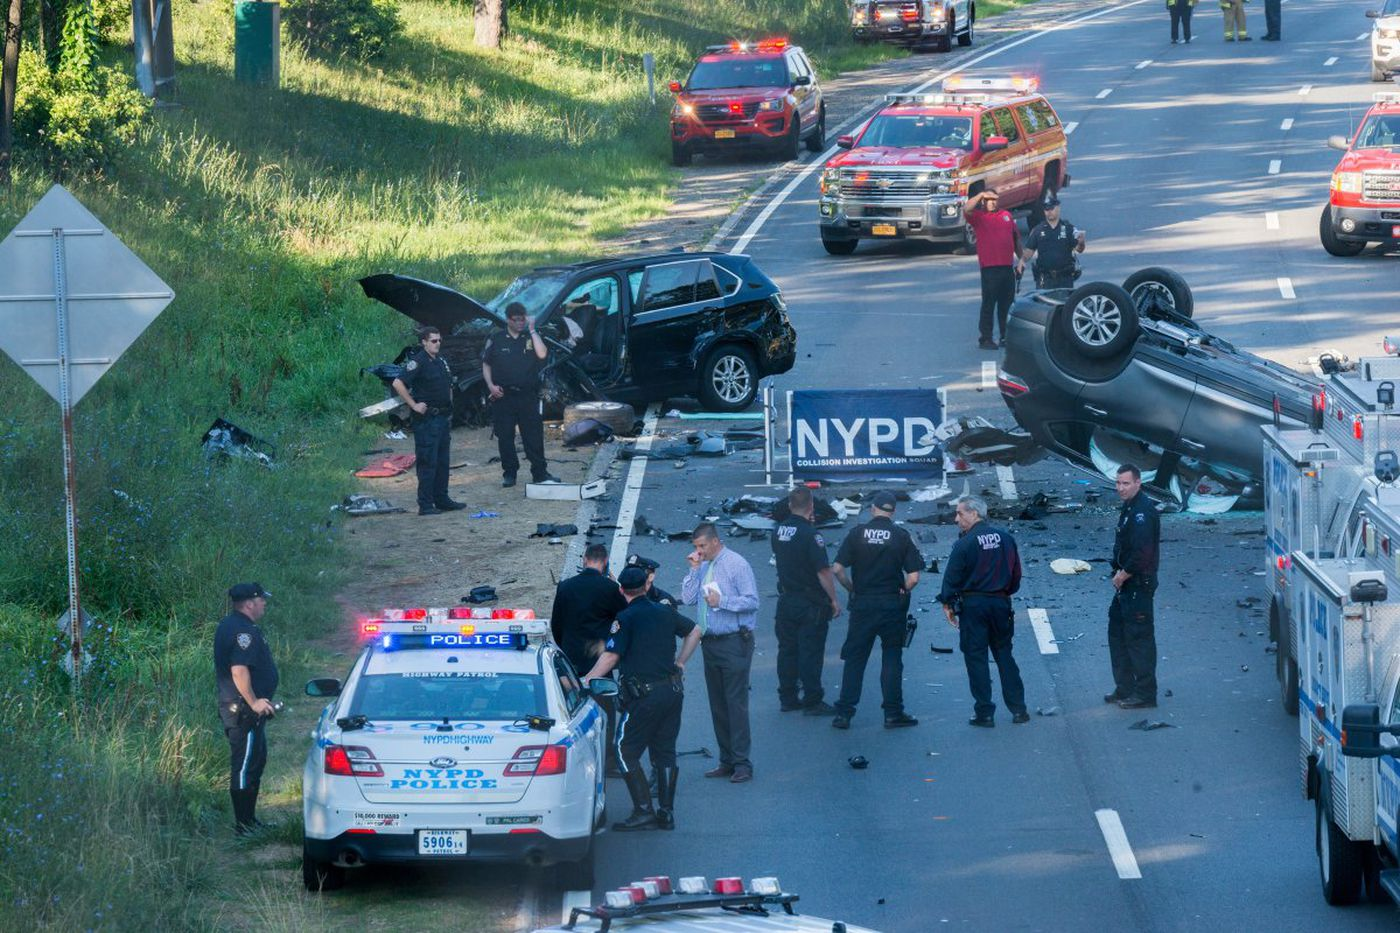 New York Car Accident in the street